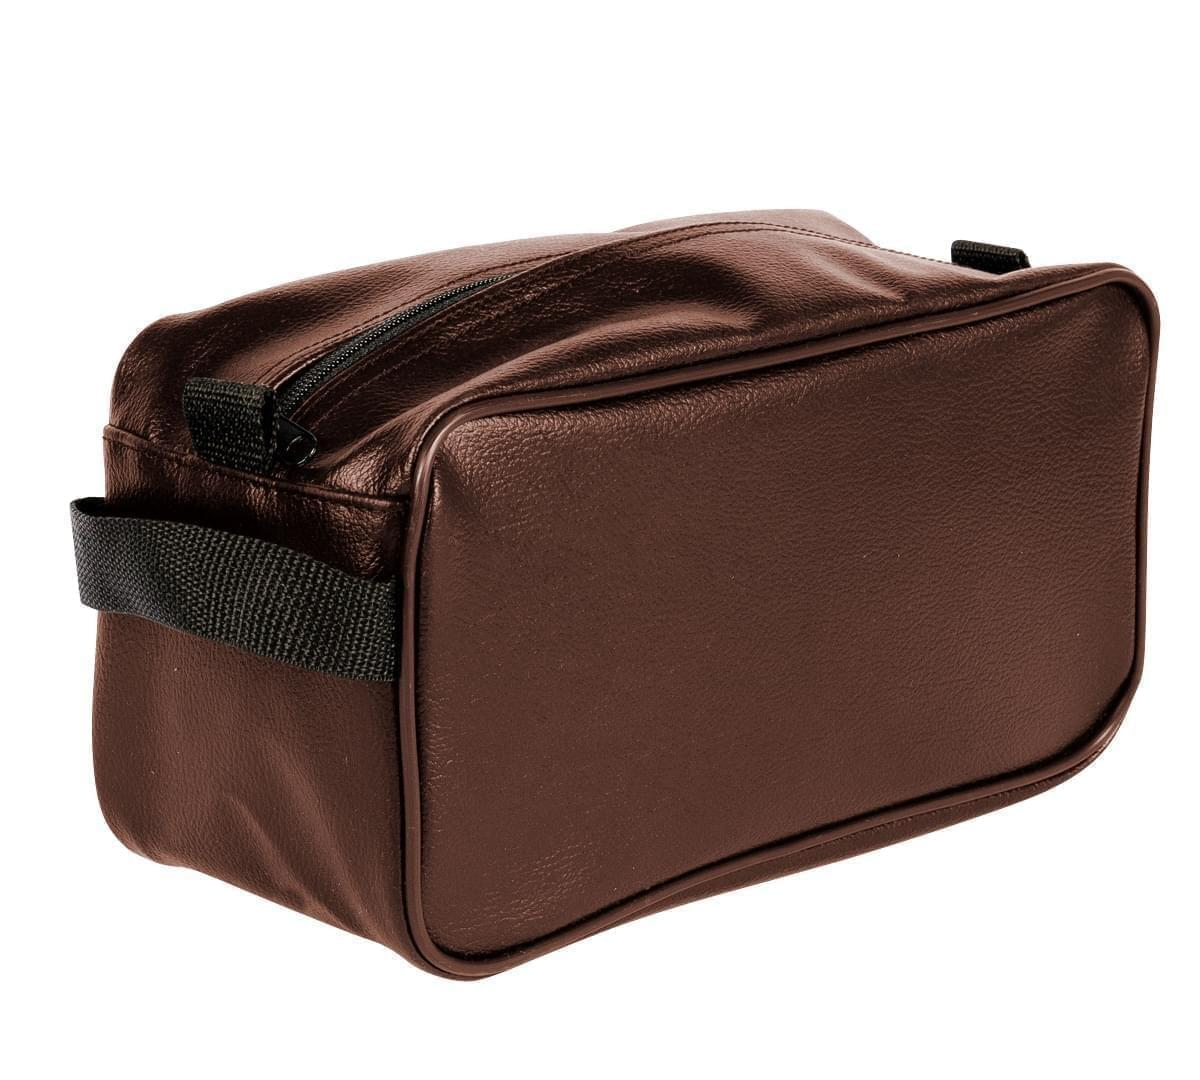 USA Made Cosmetic & Toiletry Cases, Brown-Black, 3000996-APR